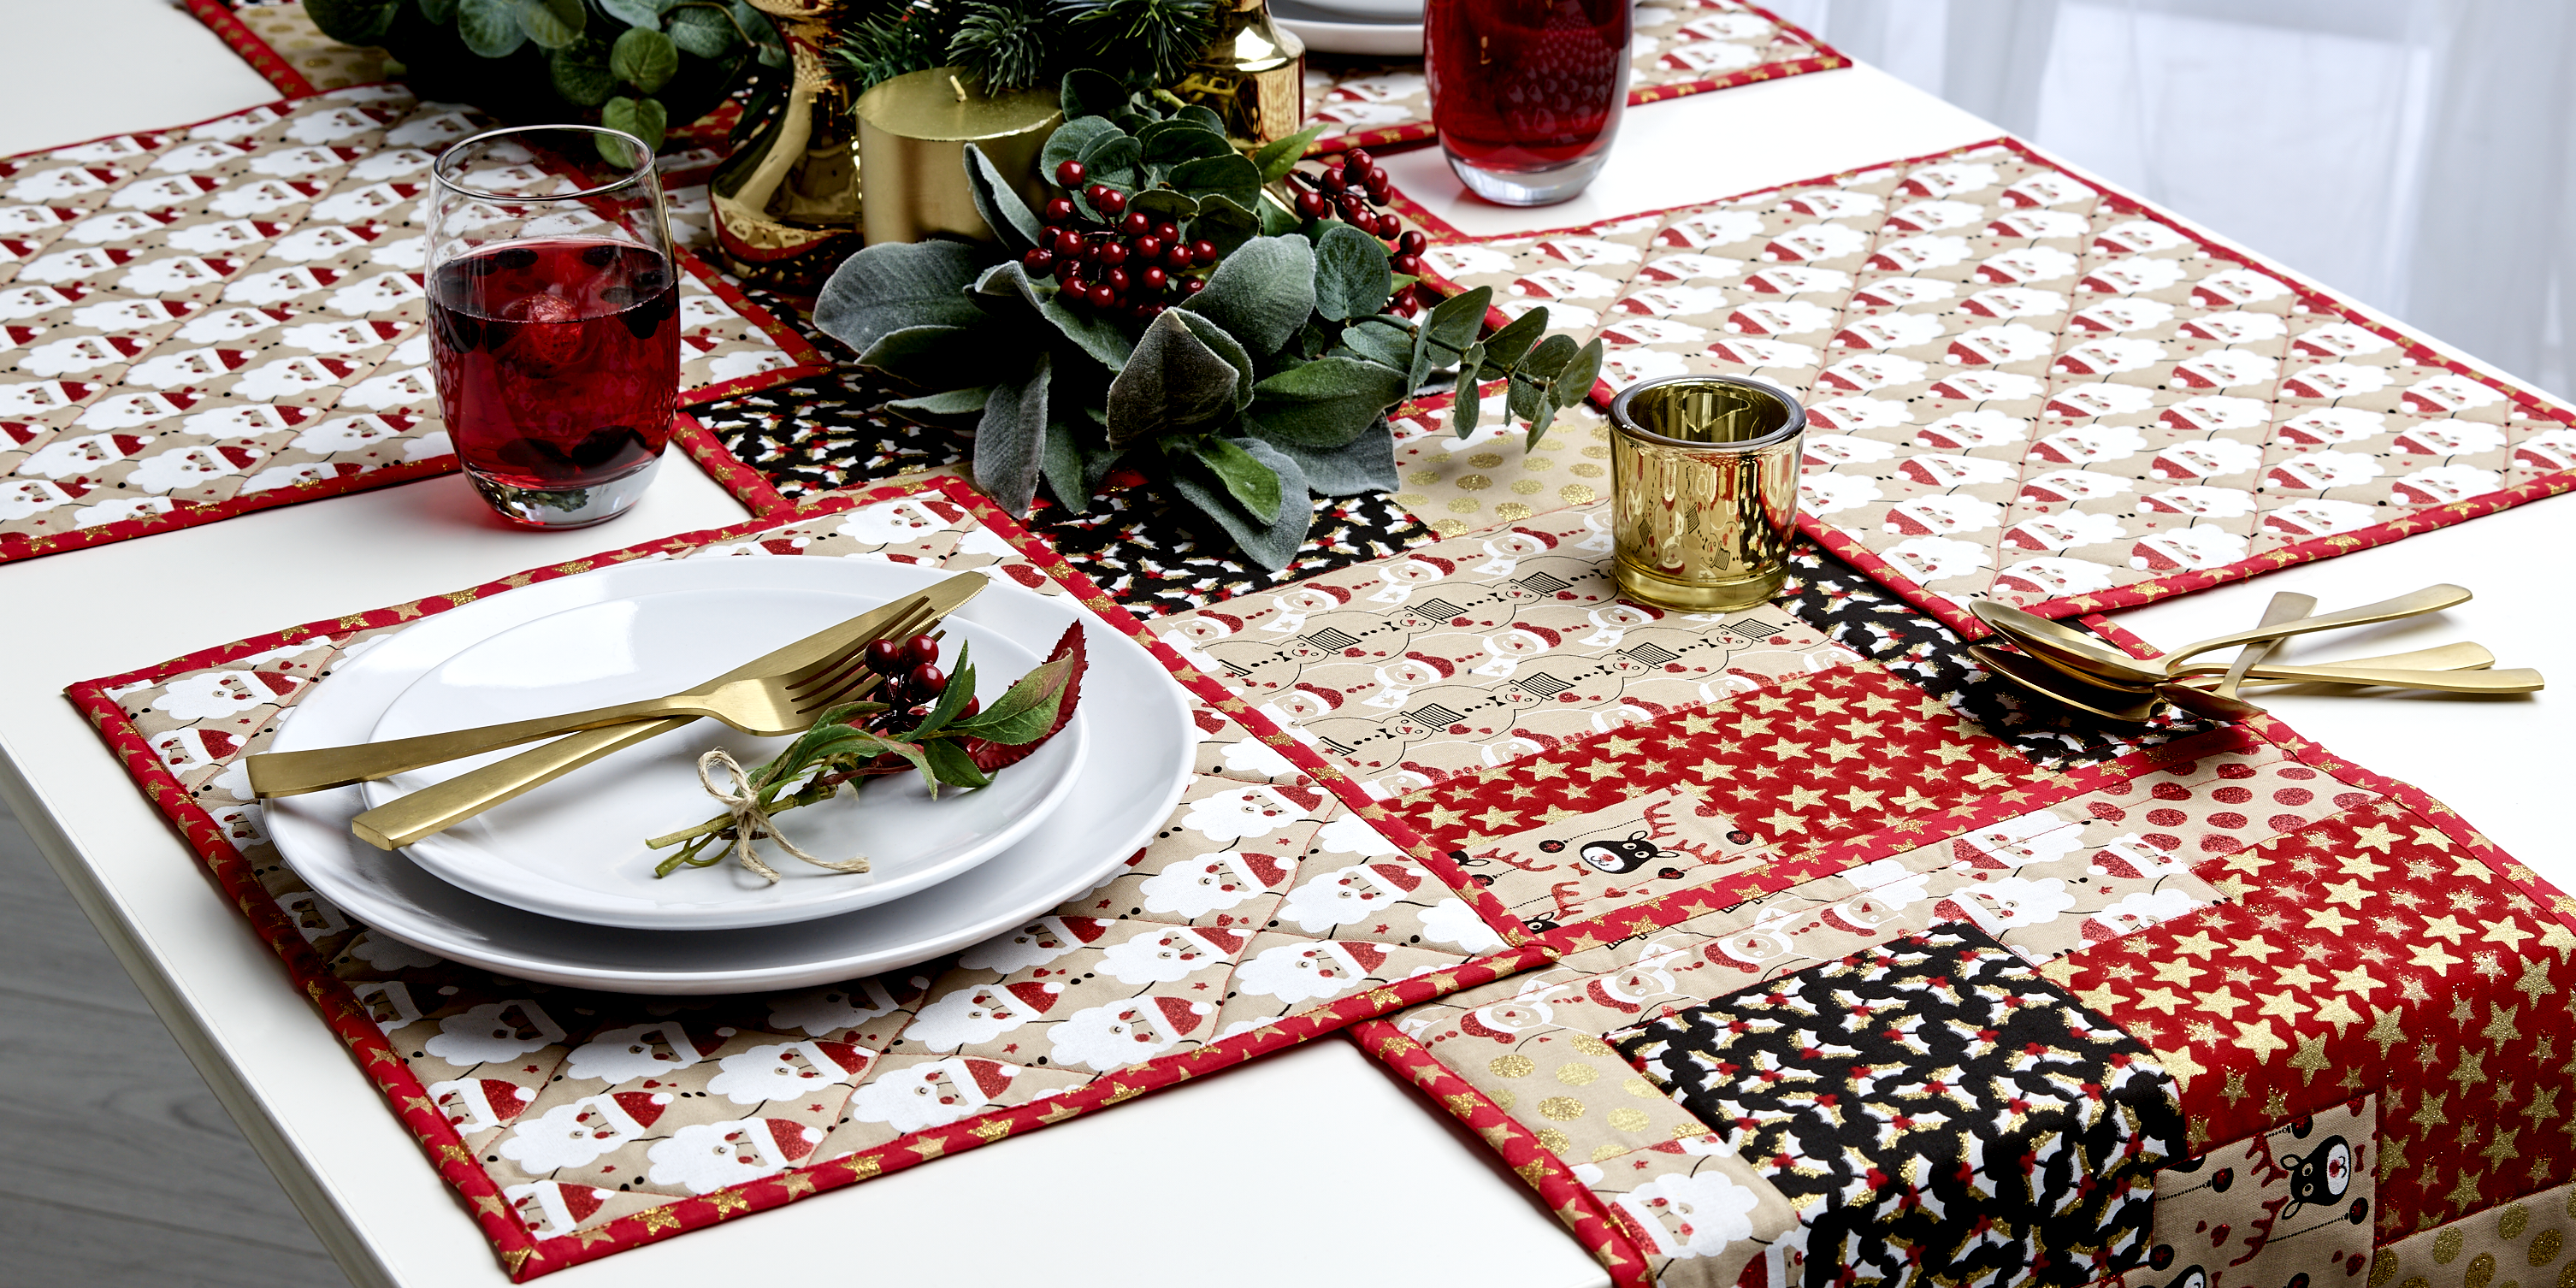 Impress The Family And Friends This Christmas With Some Placemats And Table Decorations Made By Yours Truly Find All Y Crafts Festive Tables Table Decorations